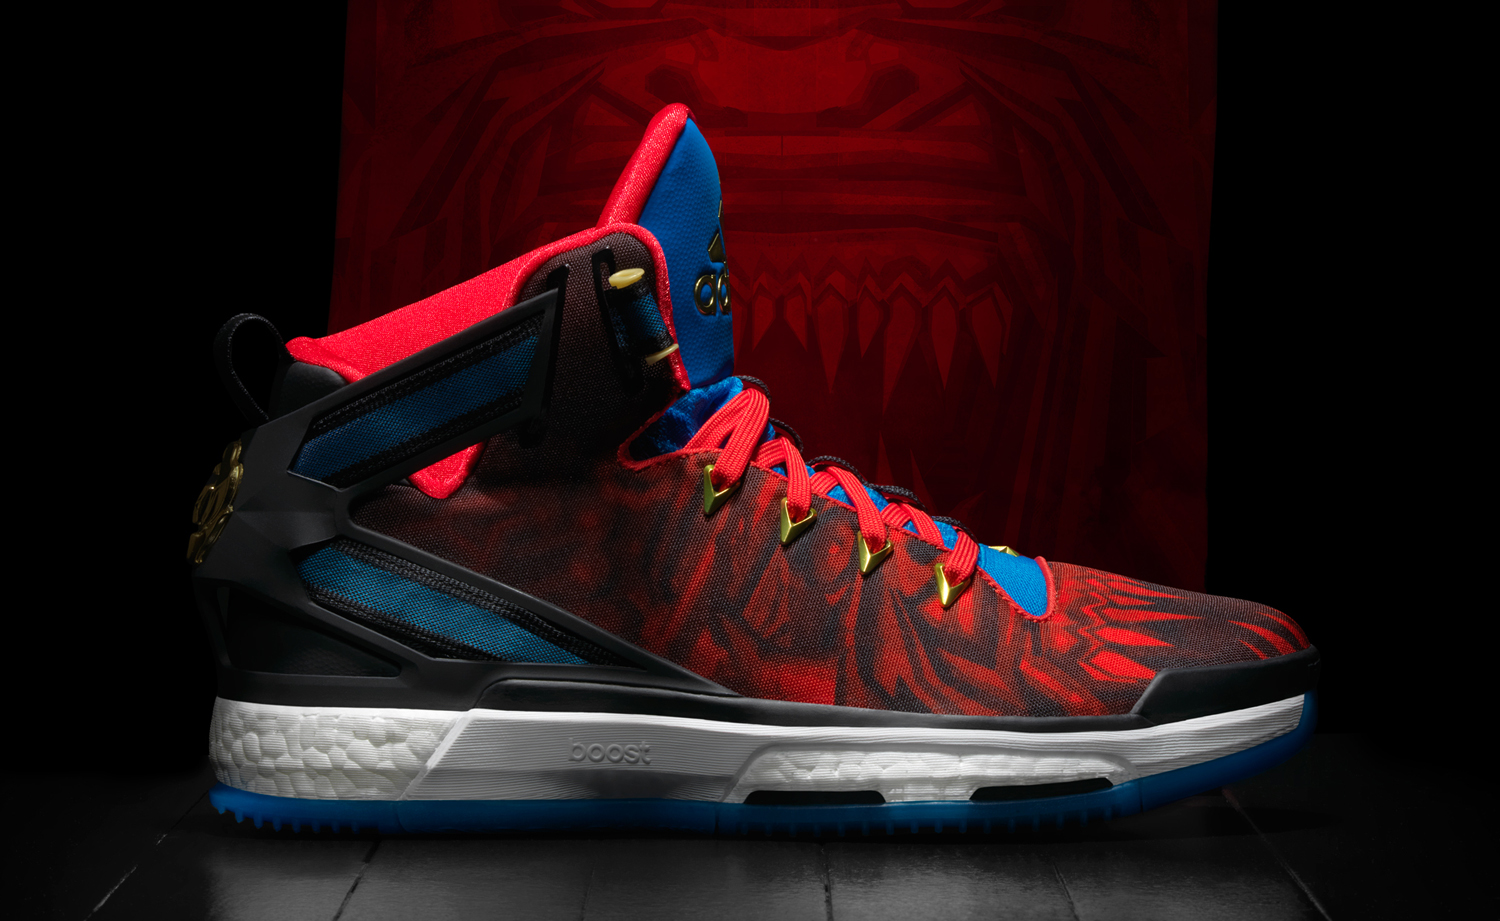 Adidas Basketball Rings in Chinese New Year via 'Fire Monkey' Shoes. For  Damian Lillard and Derrick Rose.